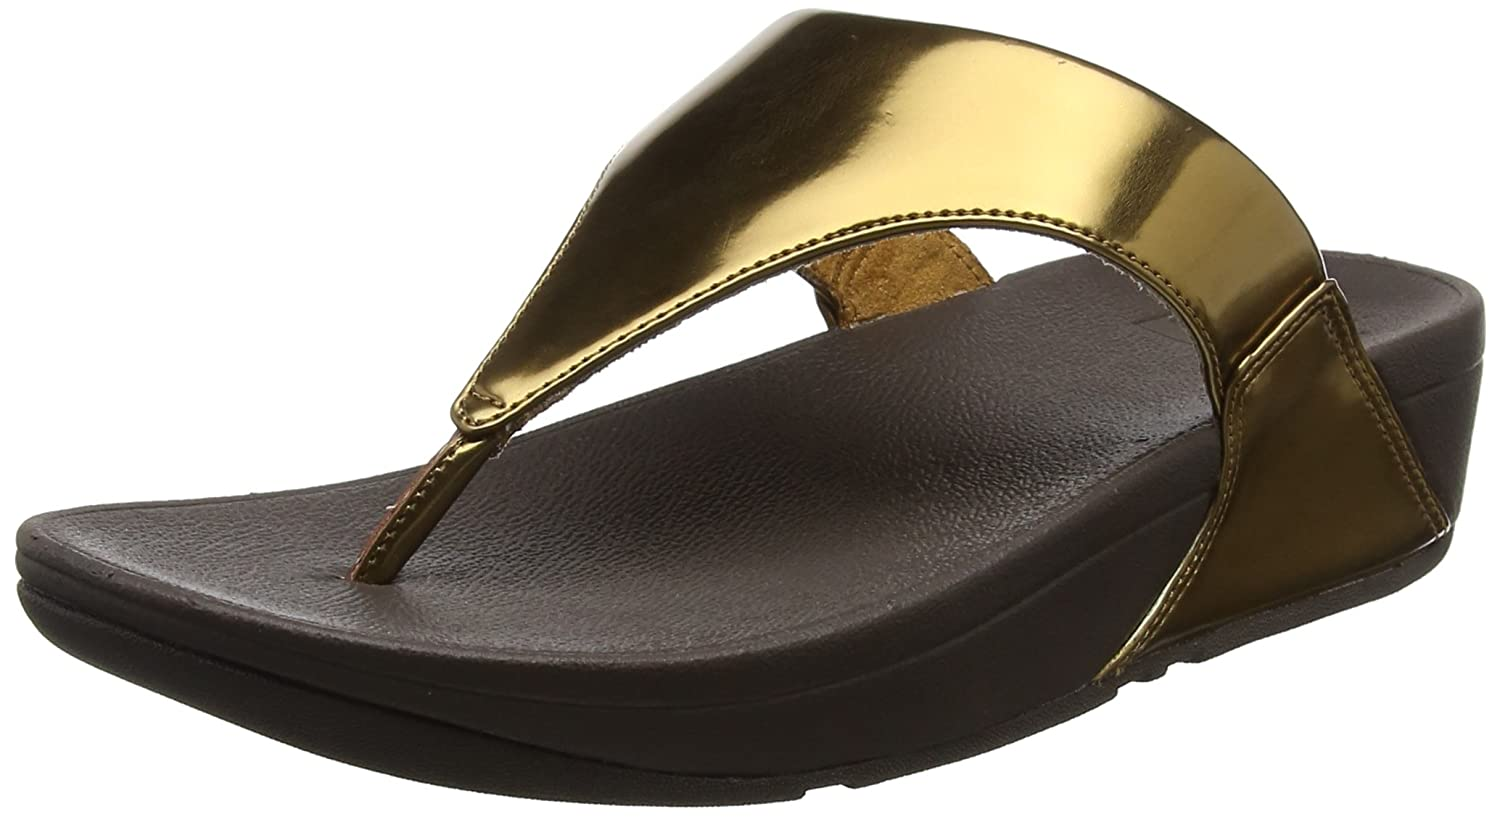 fd8aef7b8f45 Fitflop Women s s Lulu Toe-Thong Sandals - Mirror Open  Amazon.co.uk  Shoes    Bags